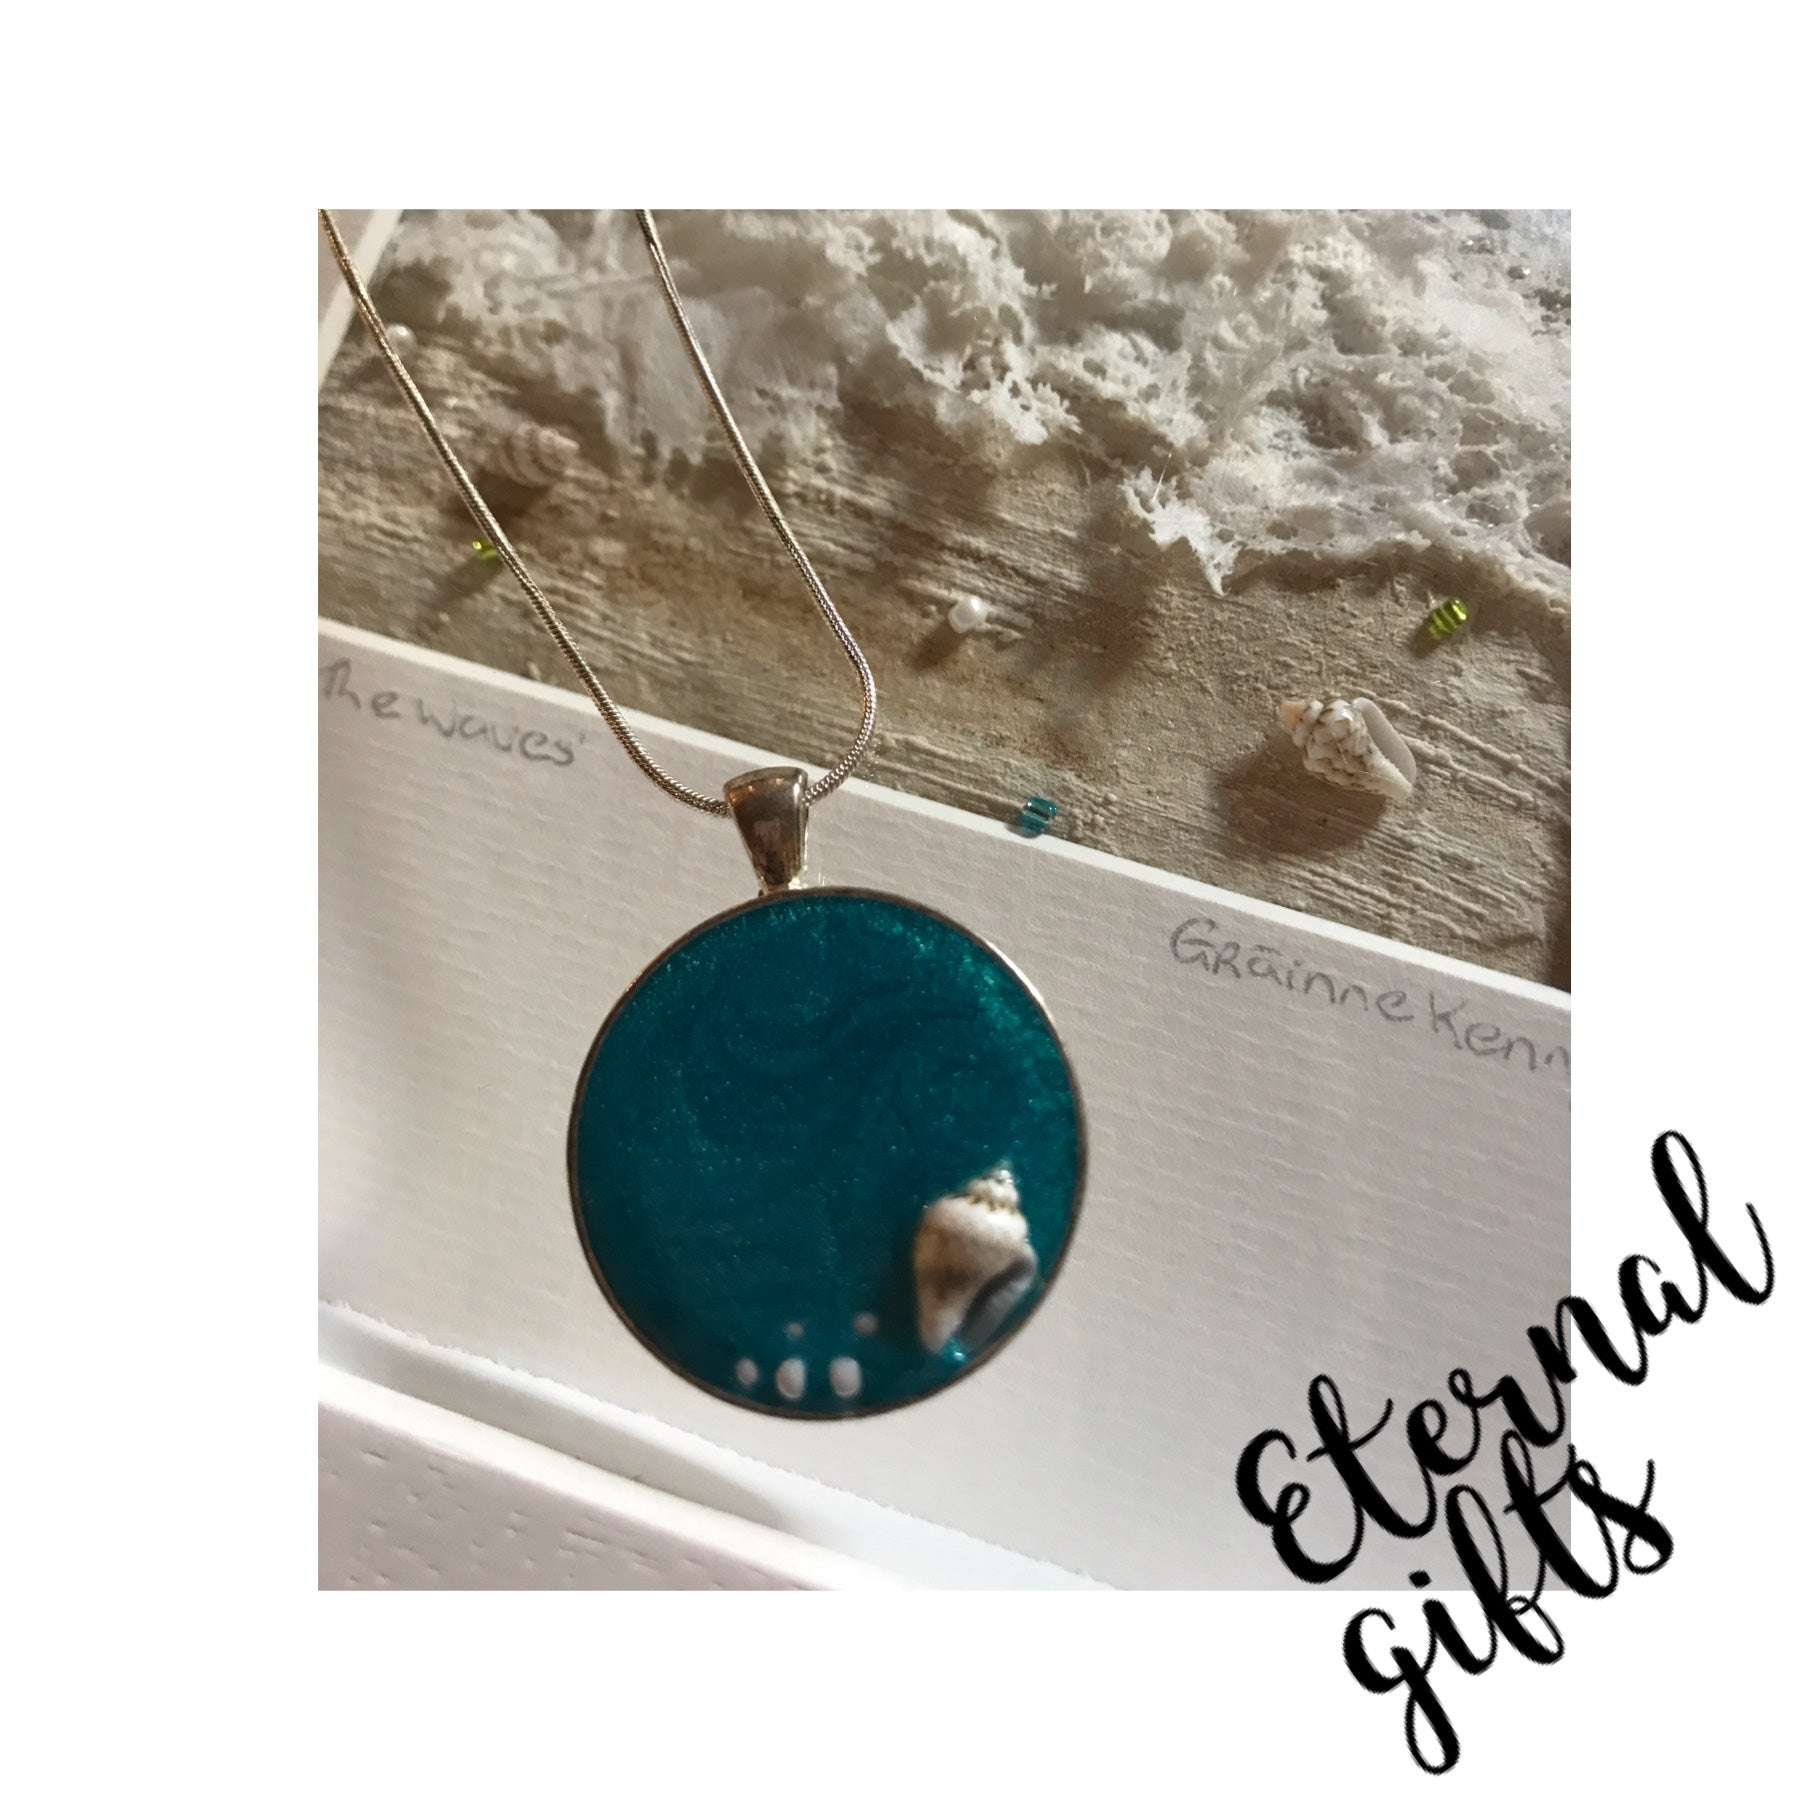 Sea Inspired Jewellery In Turquoise with shell embellishment by Grainne Kenny